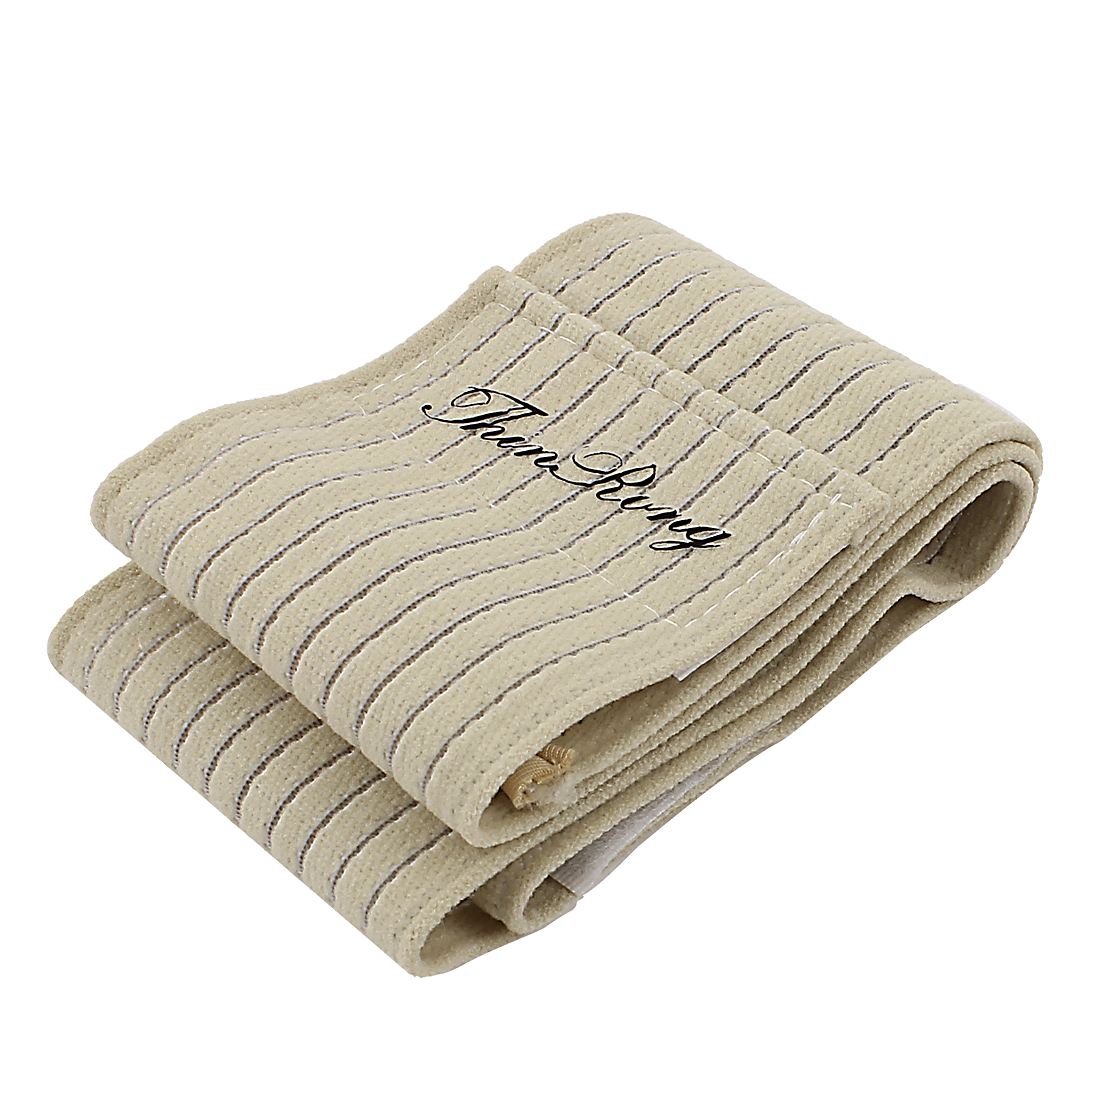 Weight Lifting Training Straps Gym Hand Wrist Support Wrap Beige